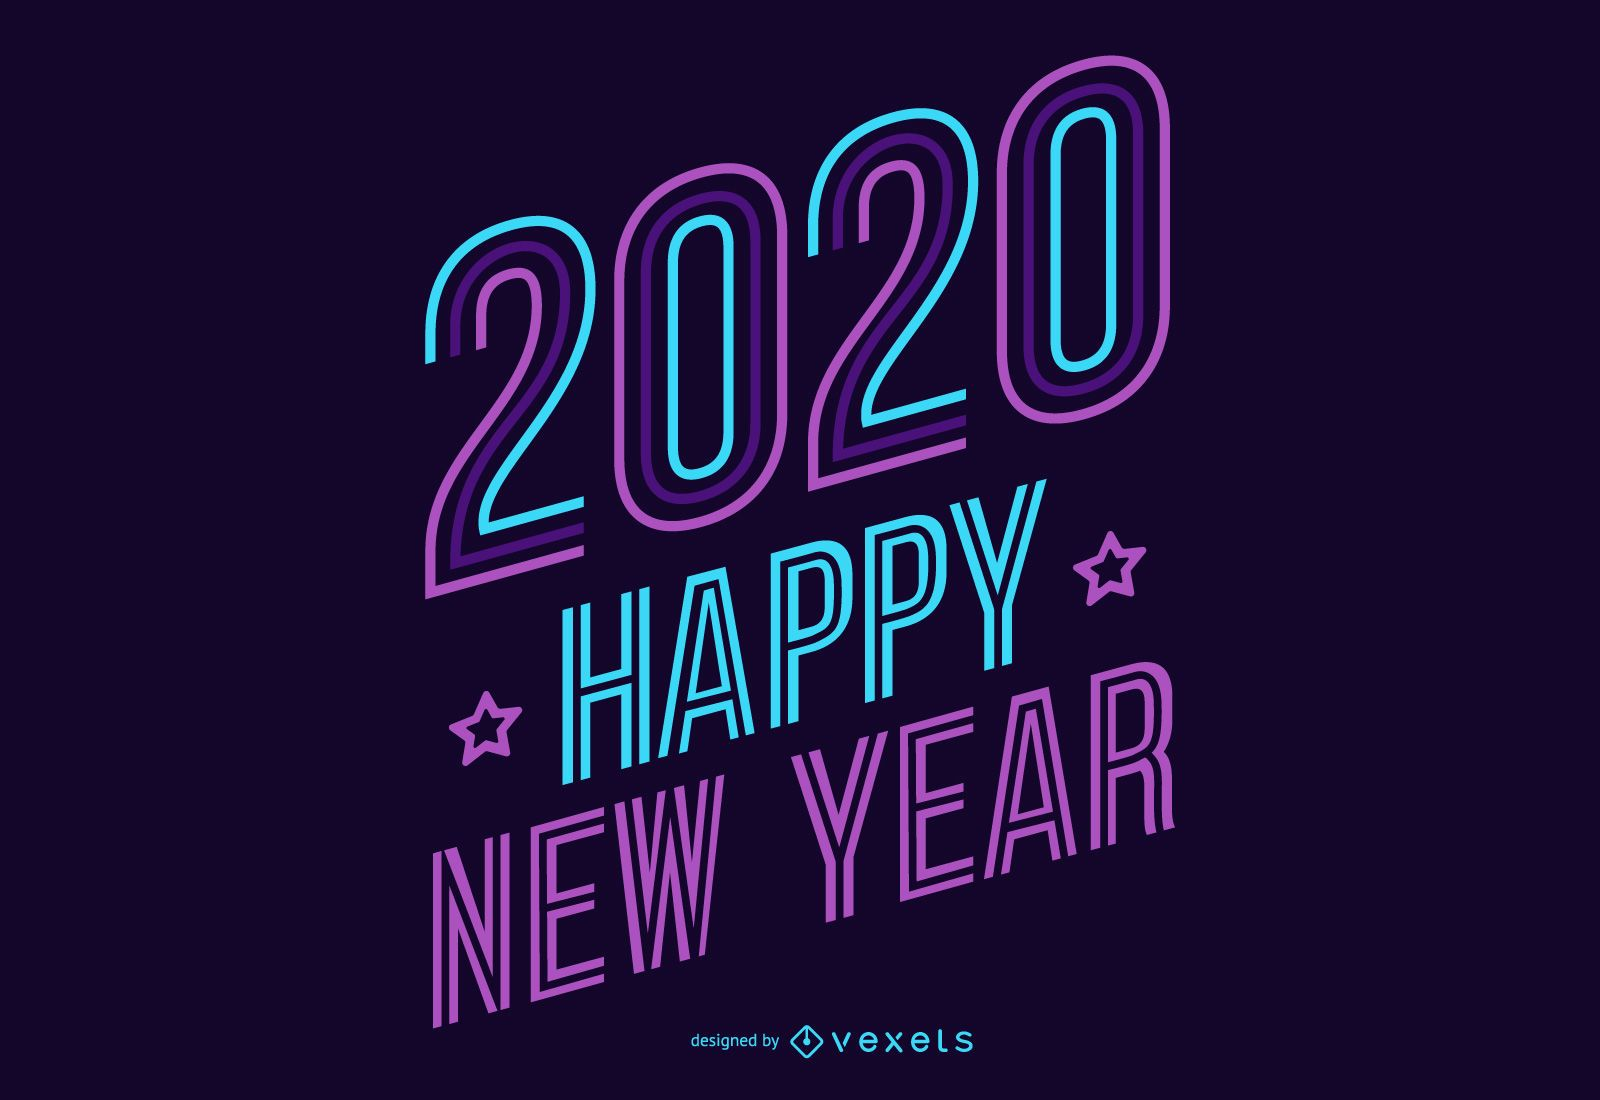 New year 2020 neon lettering